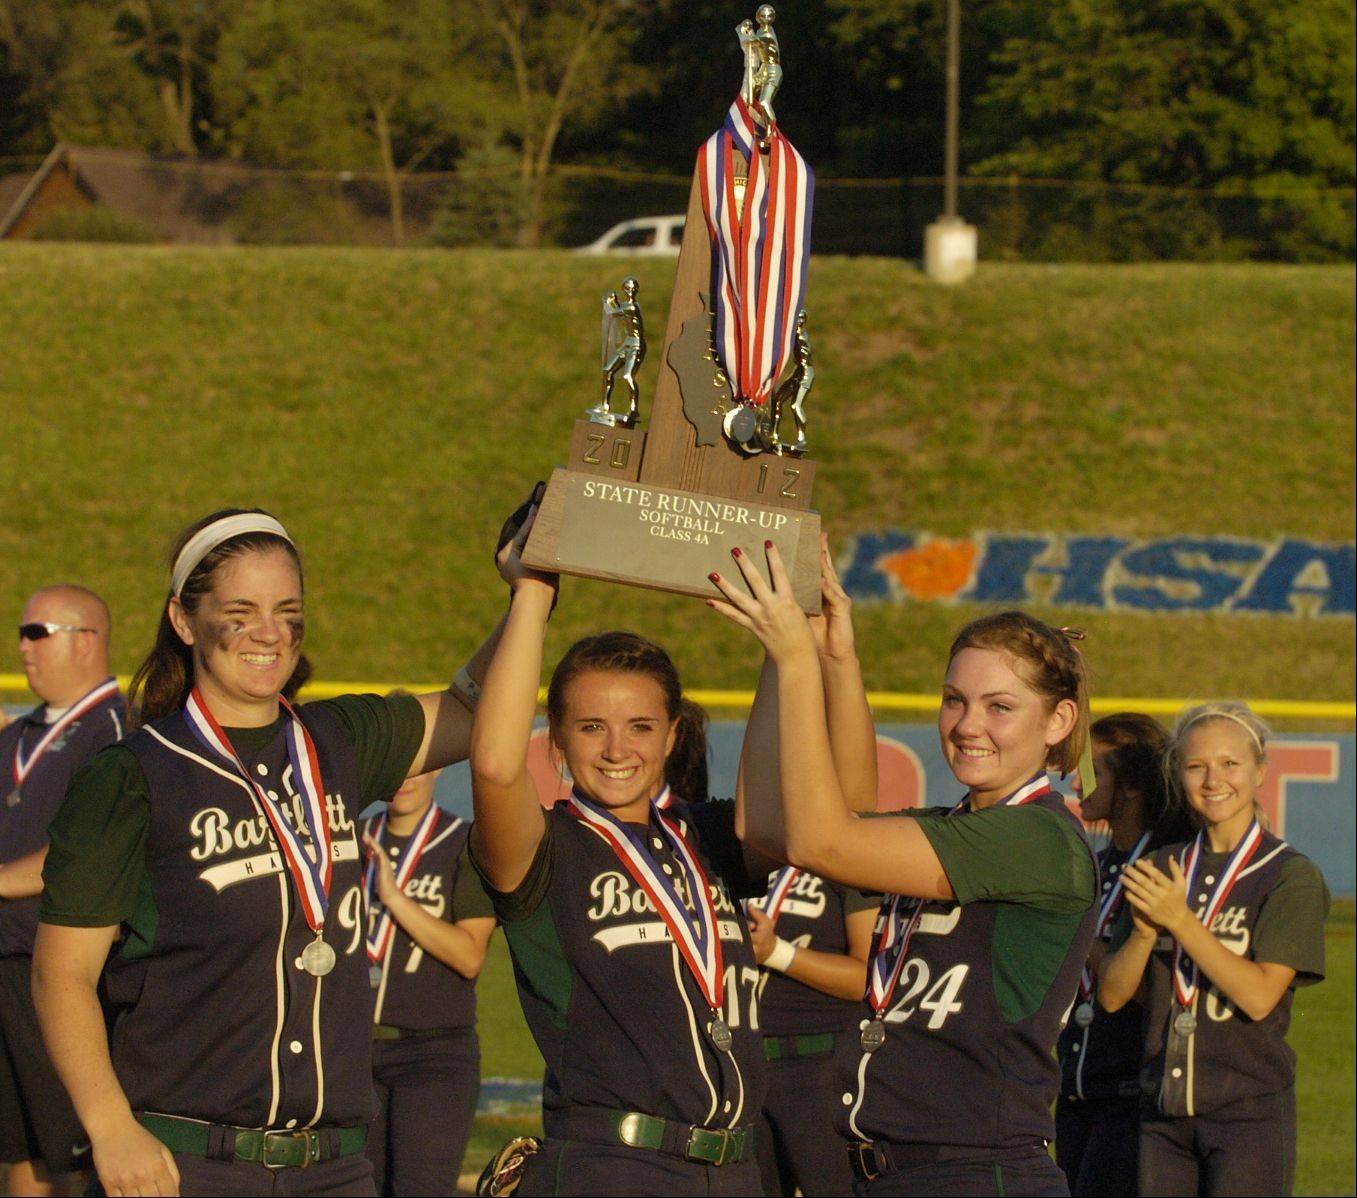 Kaylyn Zierke, Amanda Montbriand and Tori Burke hoist the 2nd place Class 4A state softball championship trophy after losing to Marist.